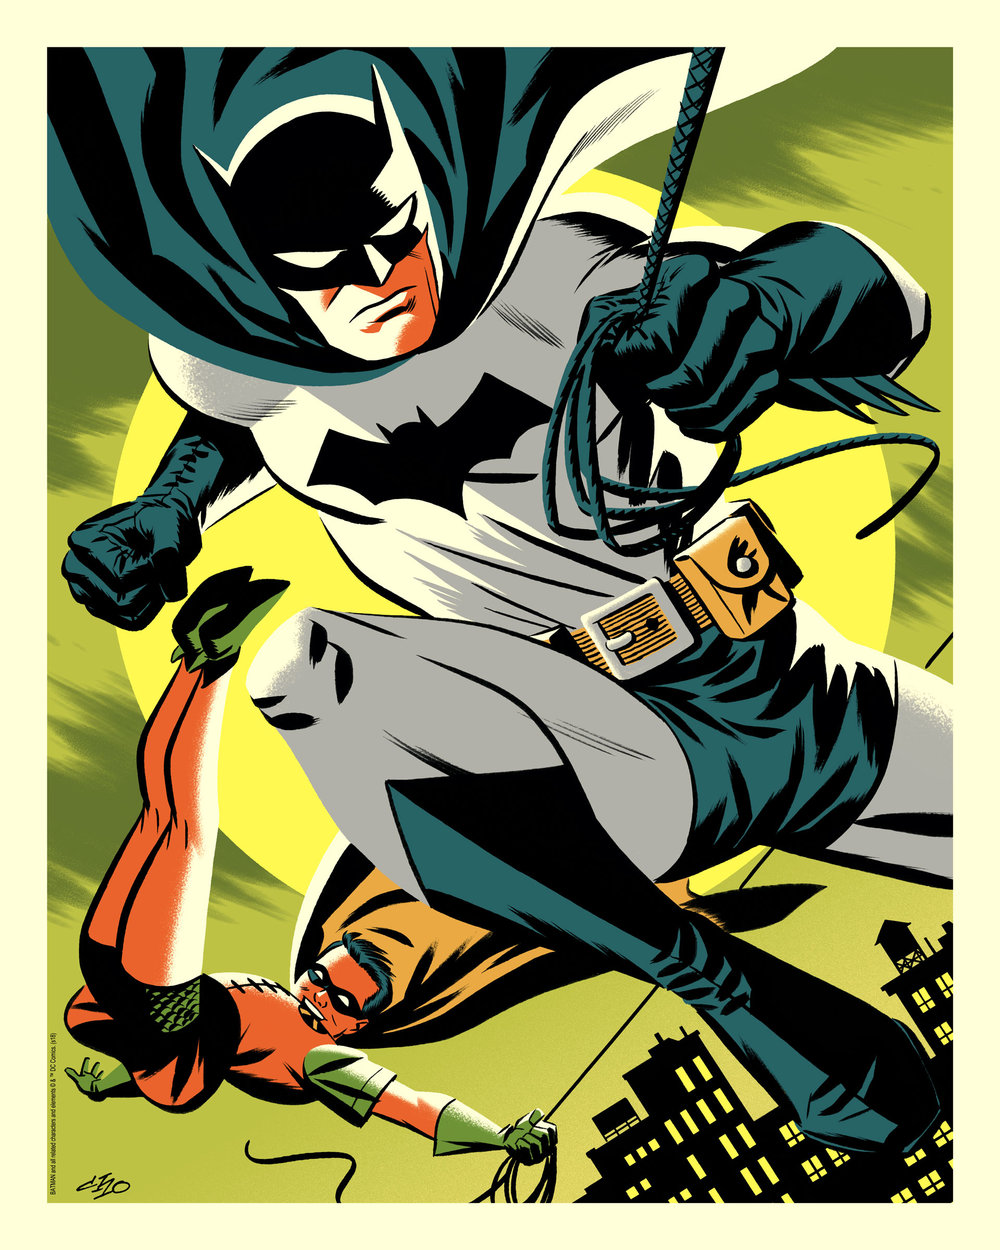 """Michael Cho """"Batman & Robin"""" Bottleneck variant lithograph, 16 x 20 inches, numbered edition of 80, available for $30"""